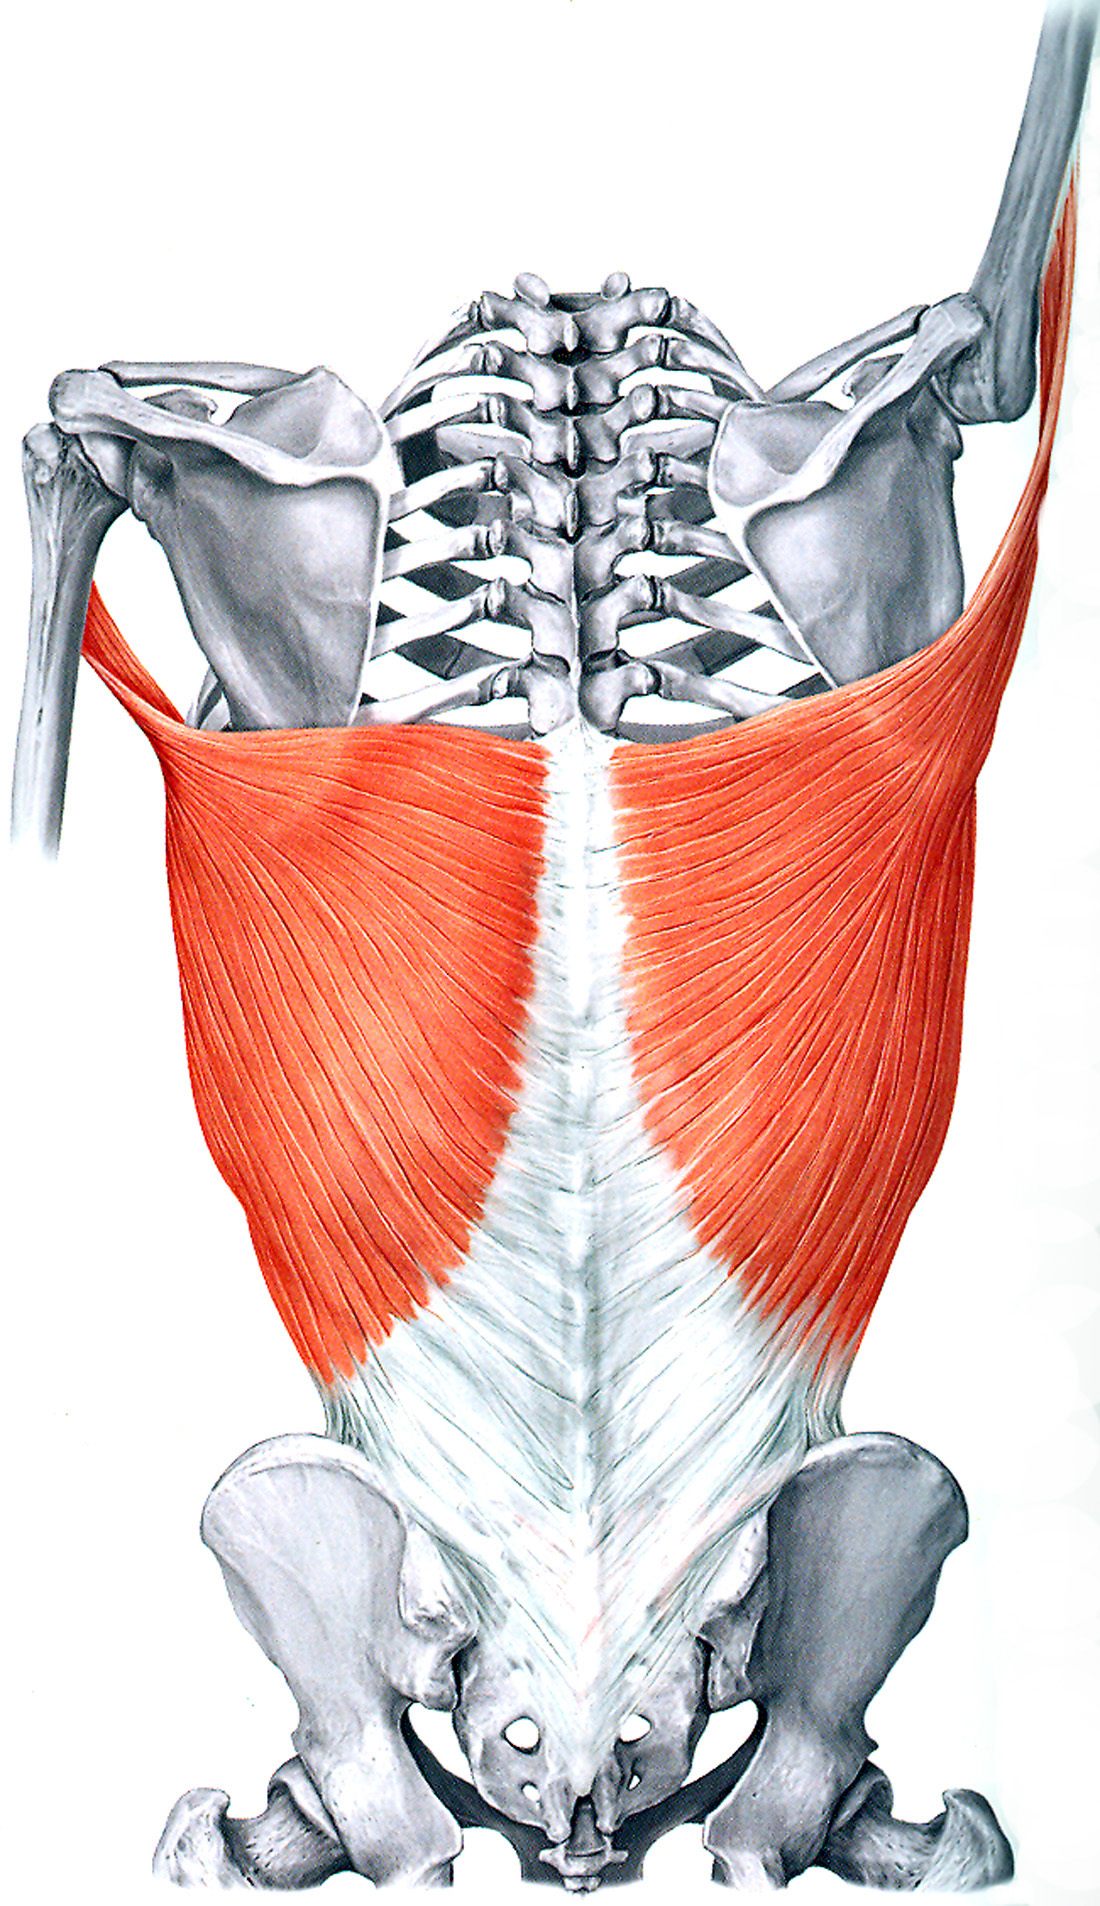 Taking Tension Out of the Bar – Discover How to Fire Your Lats